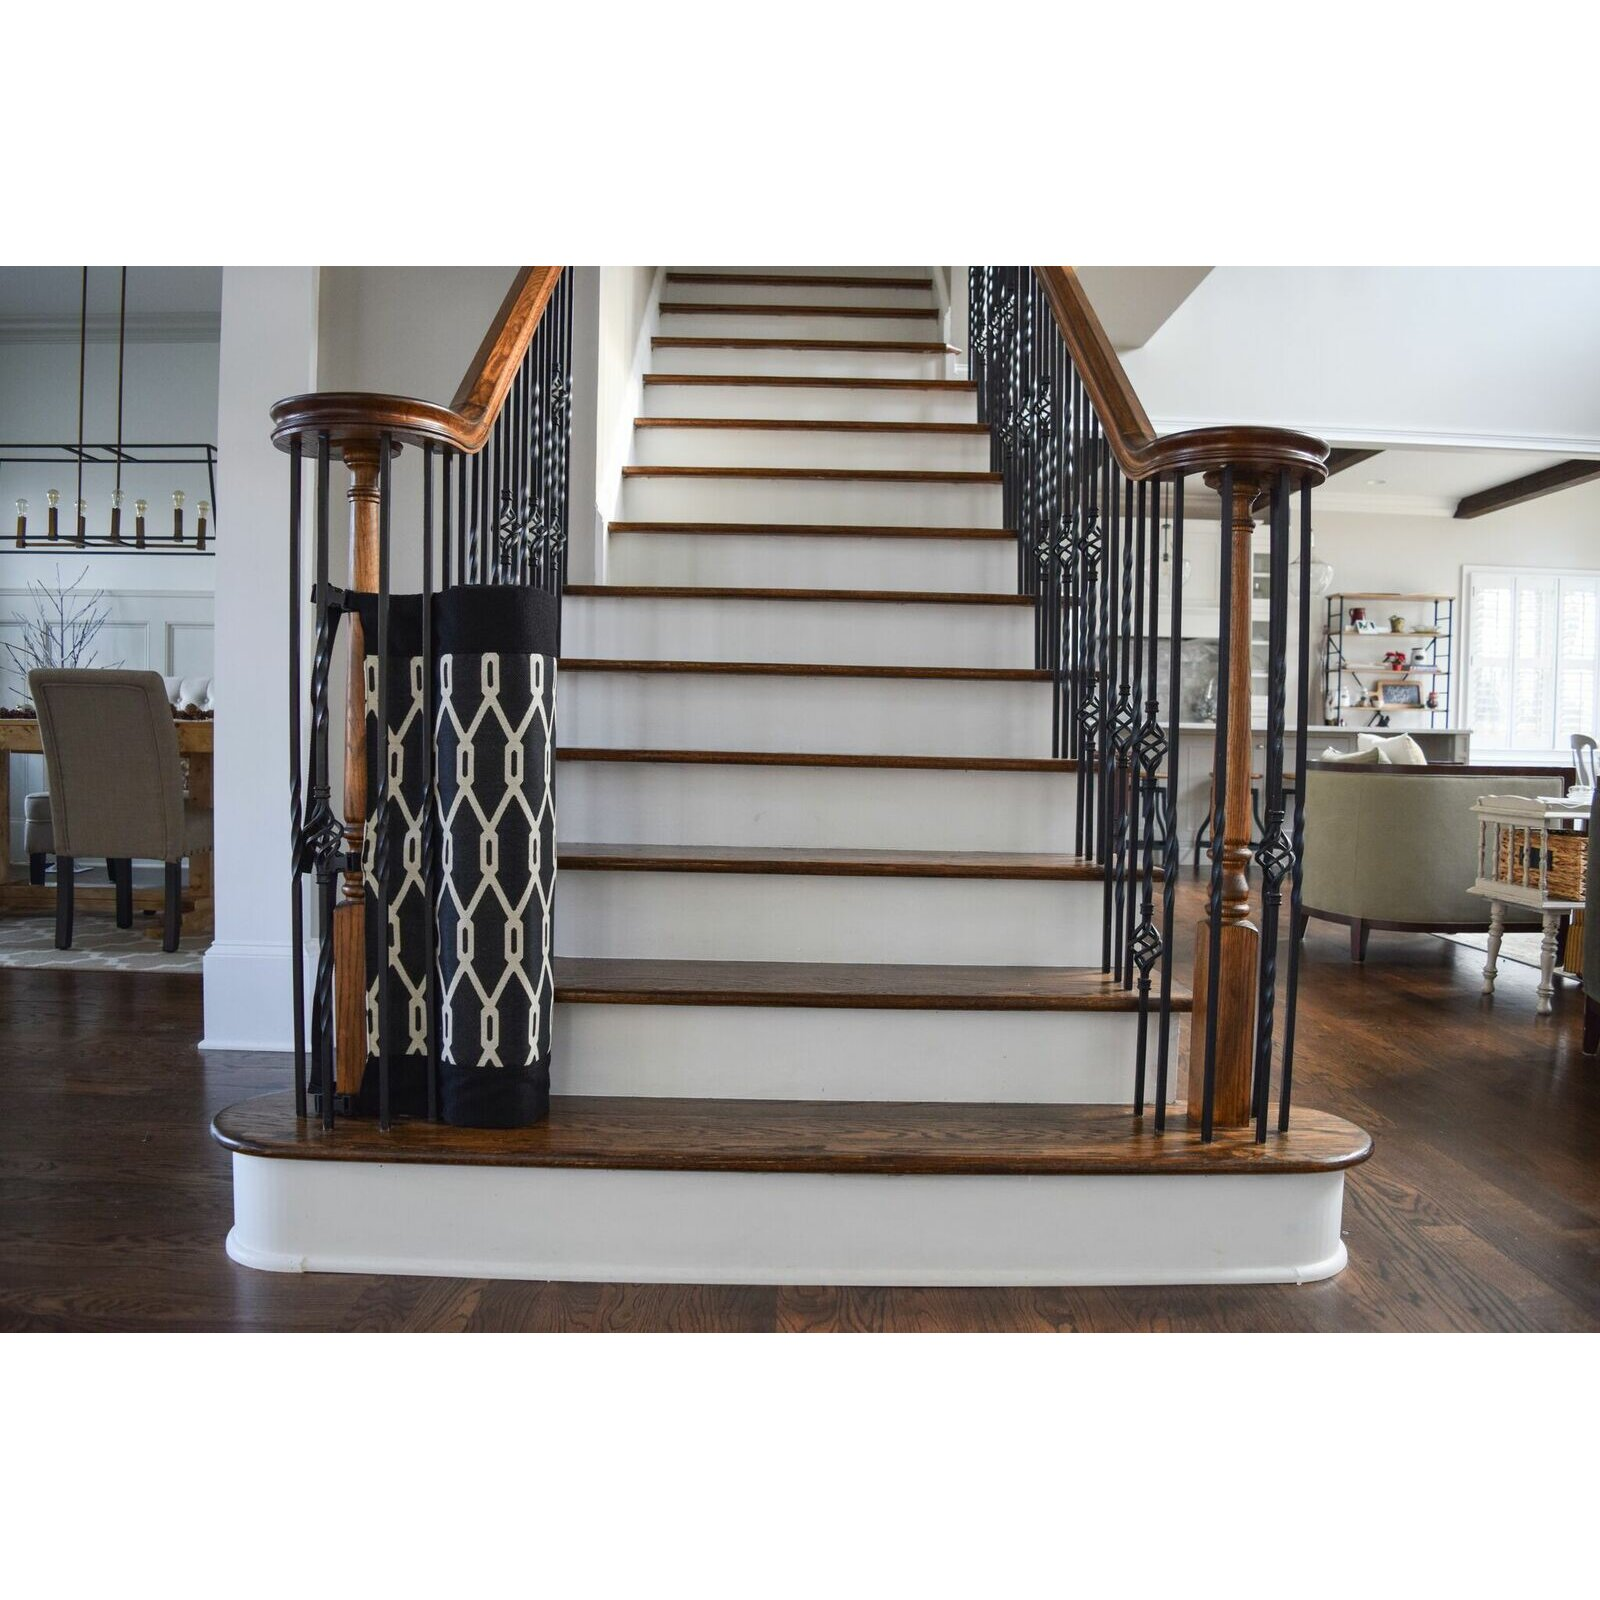 Thestairbarrier Banister To Banister Indoor Outdoor Safety